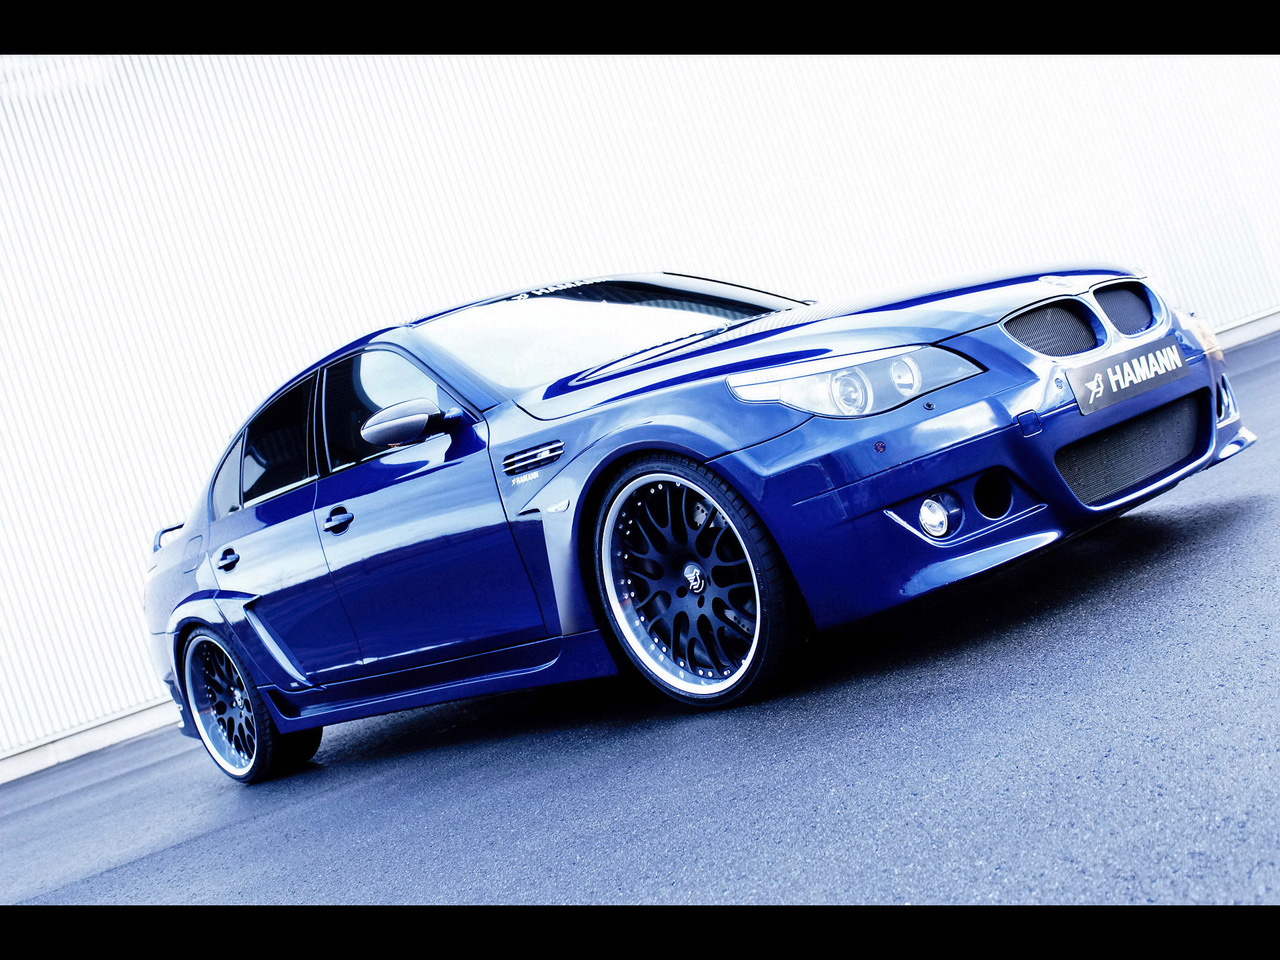 2006 Hamann BMW M5 Edition Race Blue Front Right 2 1280x960 Wallpaper 1280x960